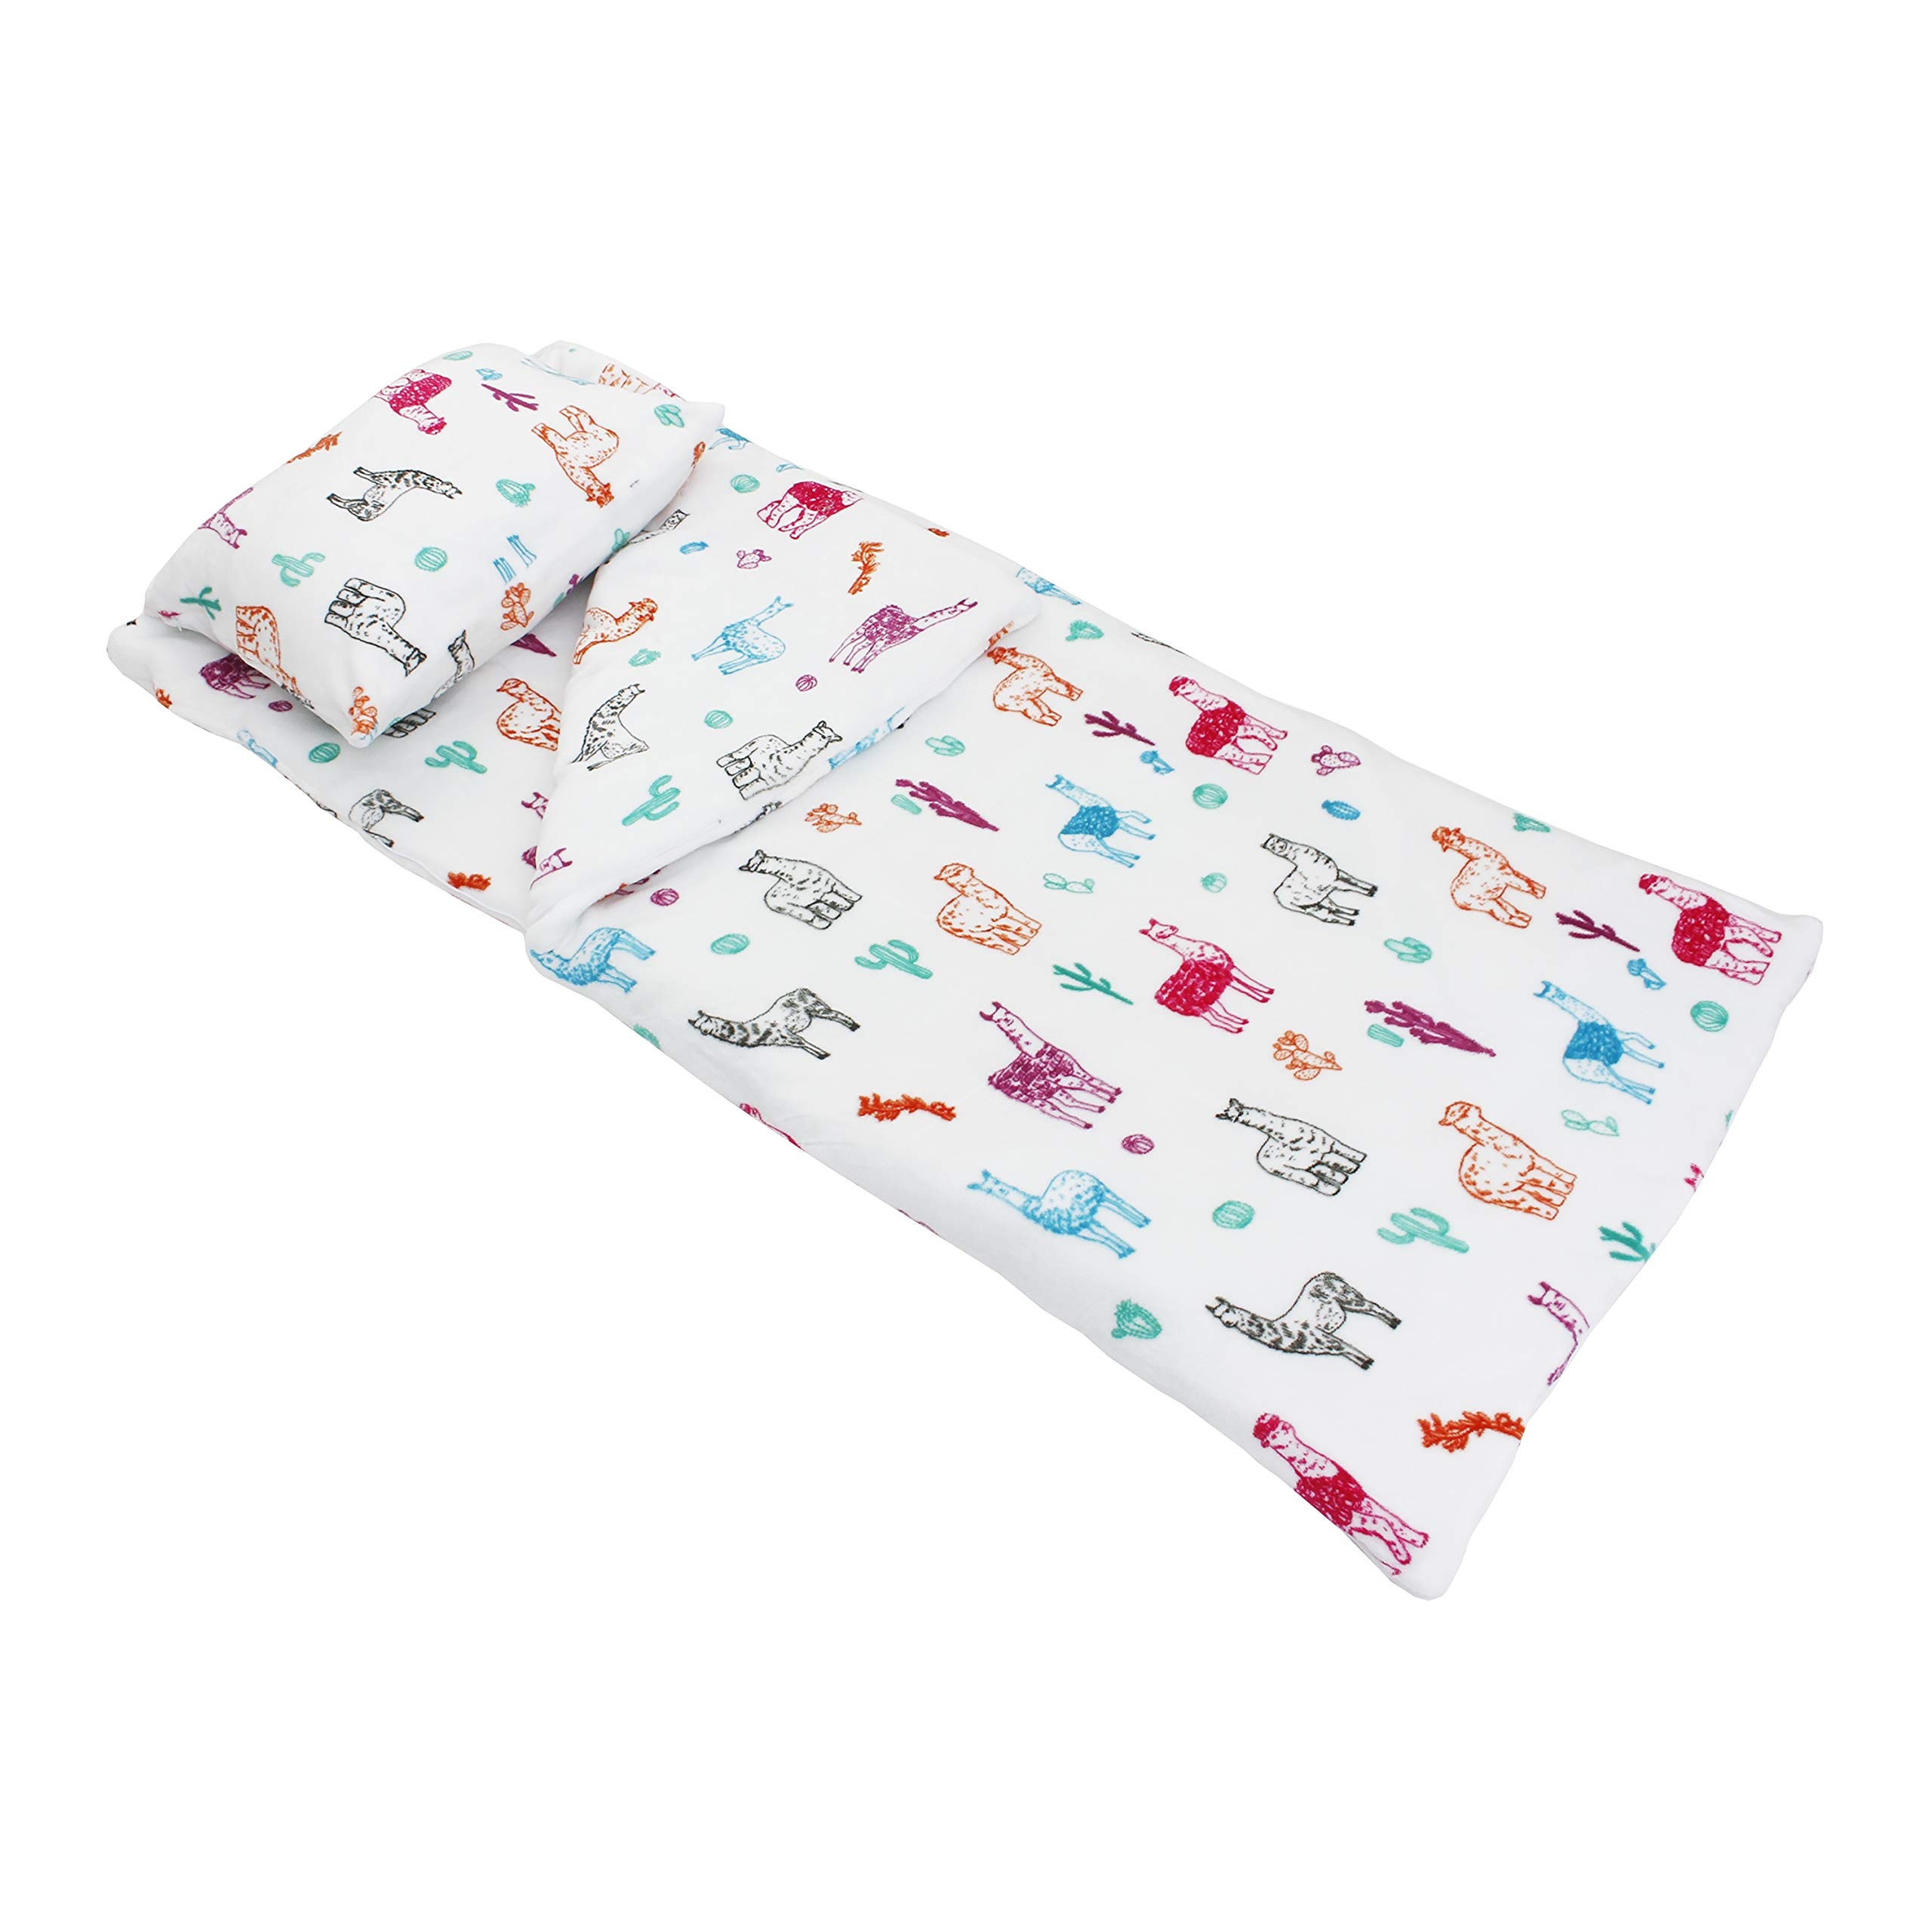 Thro by Marlo Lorenz Sleeping Bag and Pillow, White by Thro by Marlo Lorenz